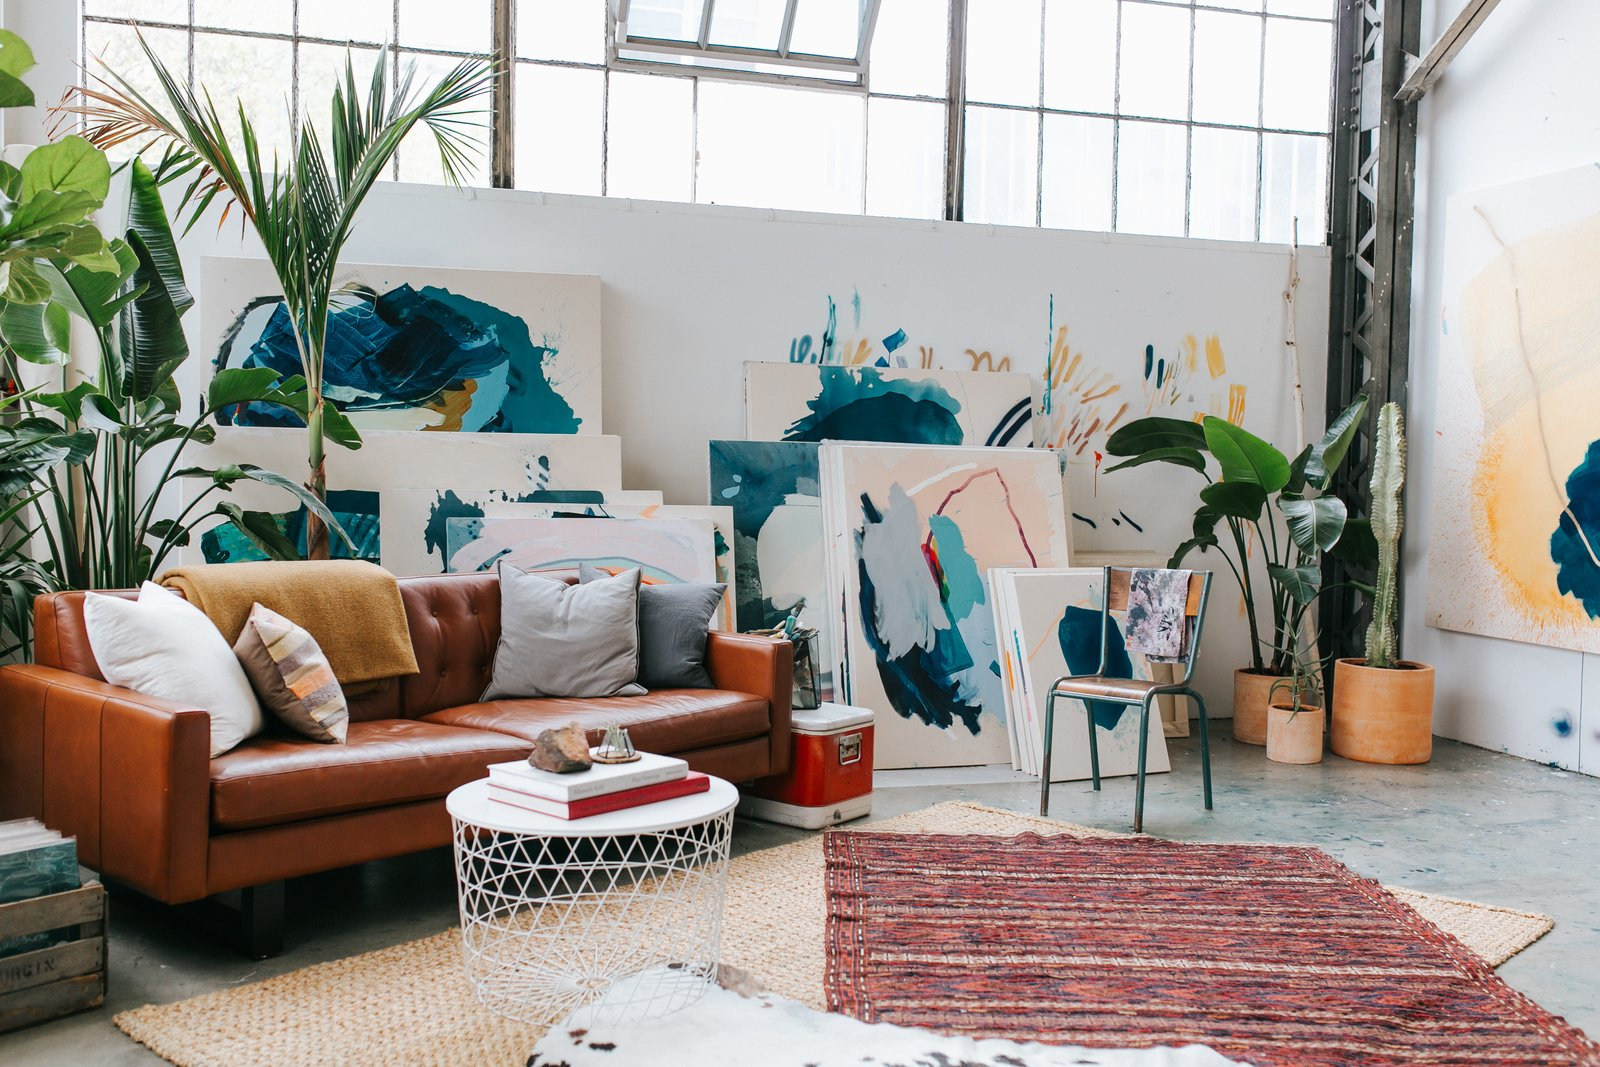 """""""We both love the Dogpatch for many reasons. It's the right amount of balance, being a little removed from the bustle of San Francisco, and there's a great sense of community among the eclectic inhabitants. It feels like an island within a city."""""""